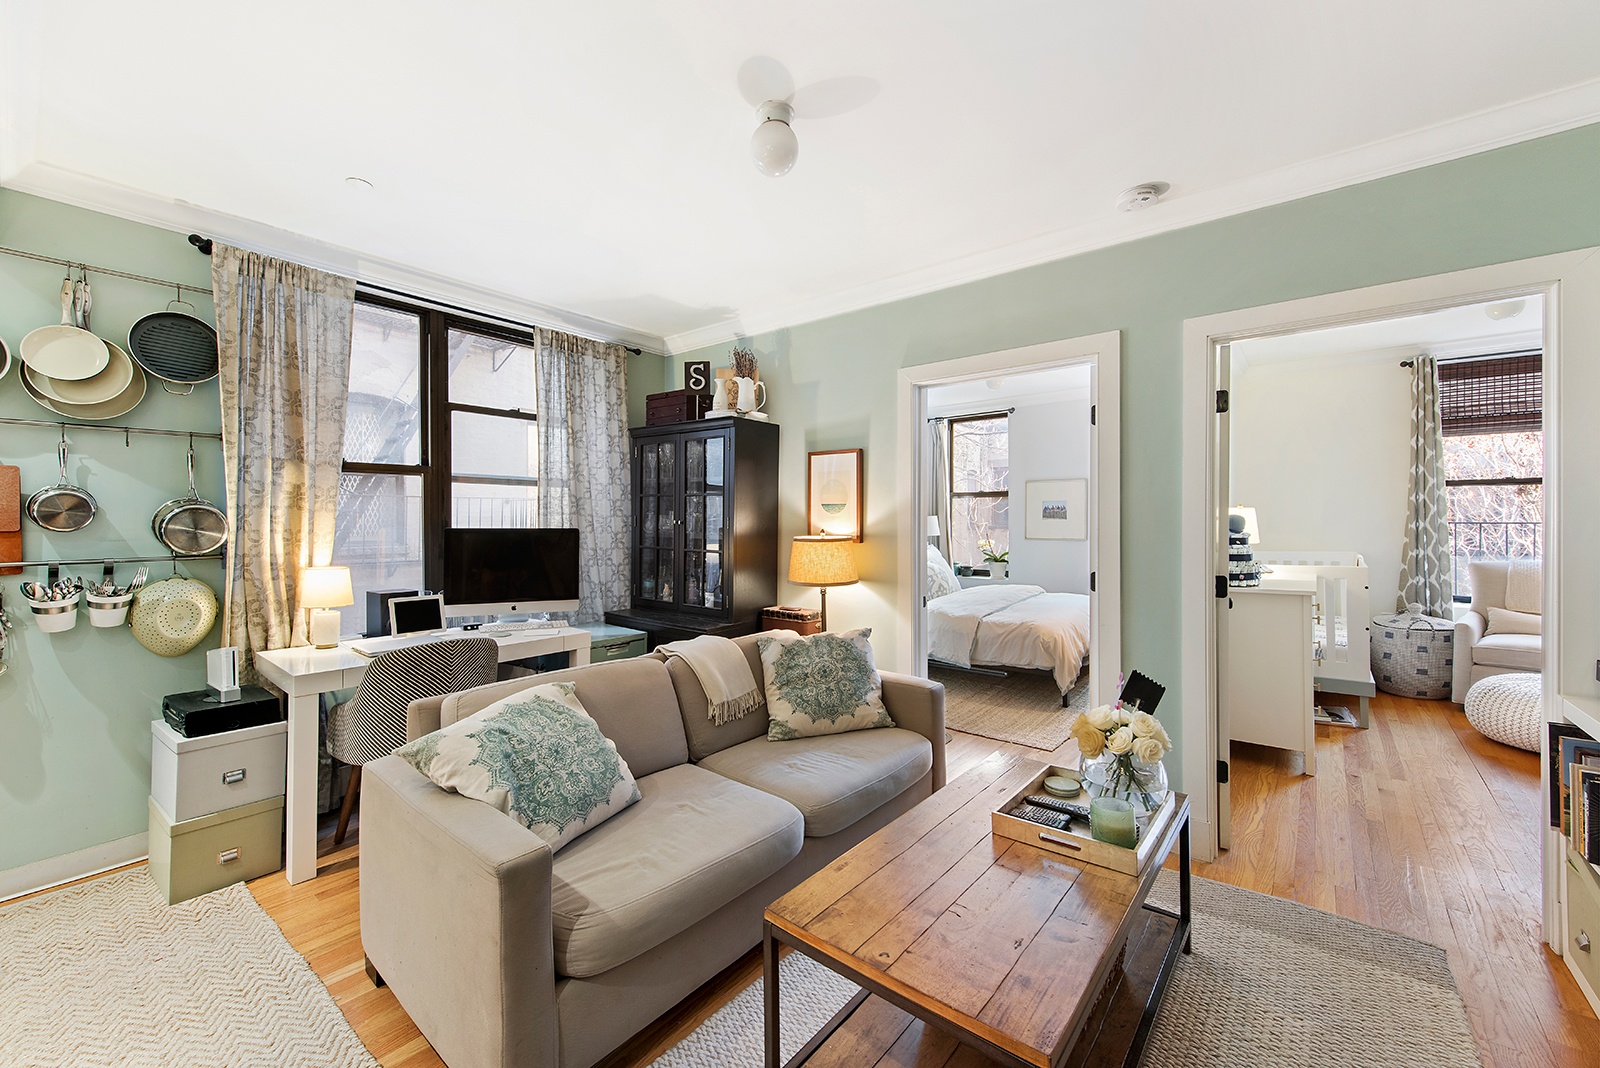 Cute Seafoam Apartment Offers Two Bedrooms In Harlem For